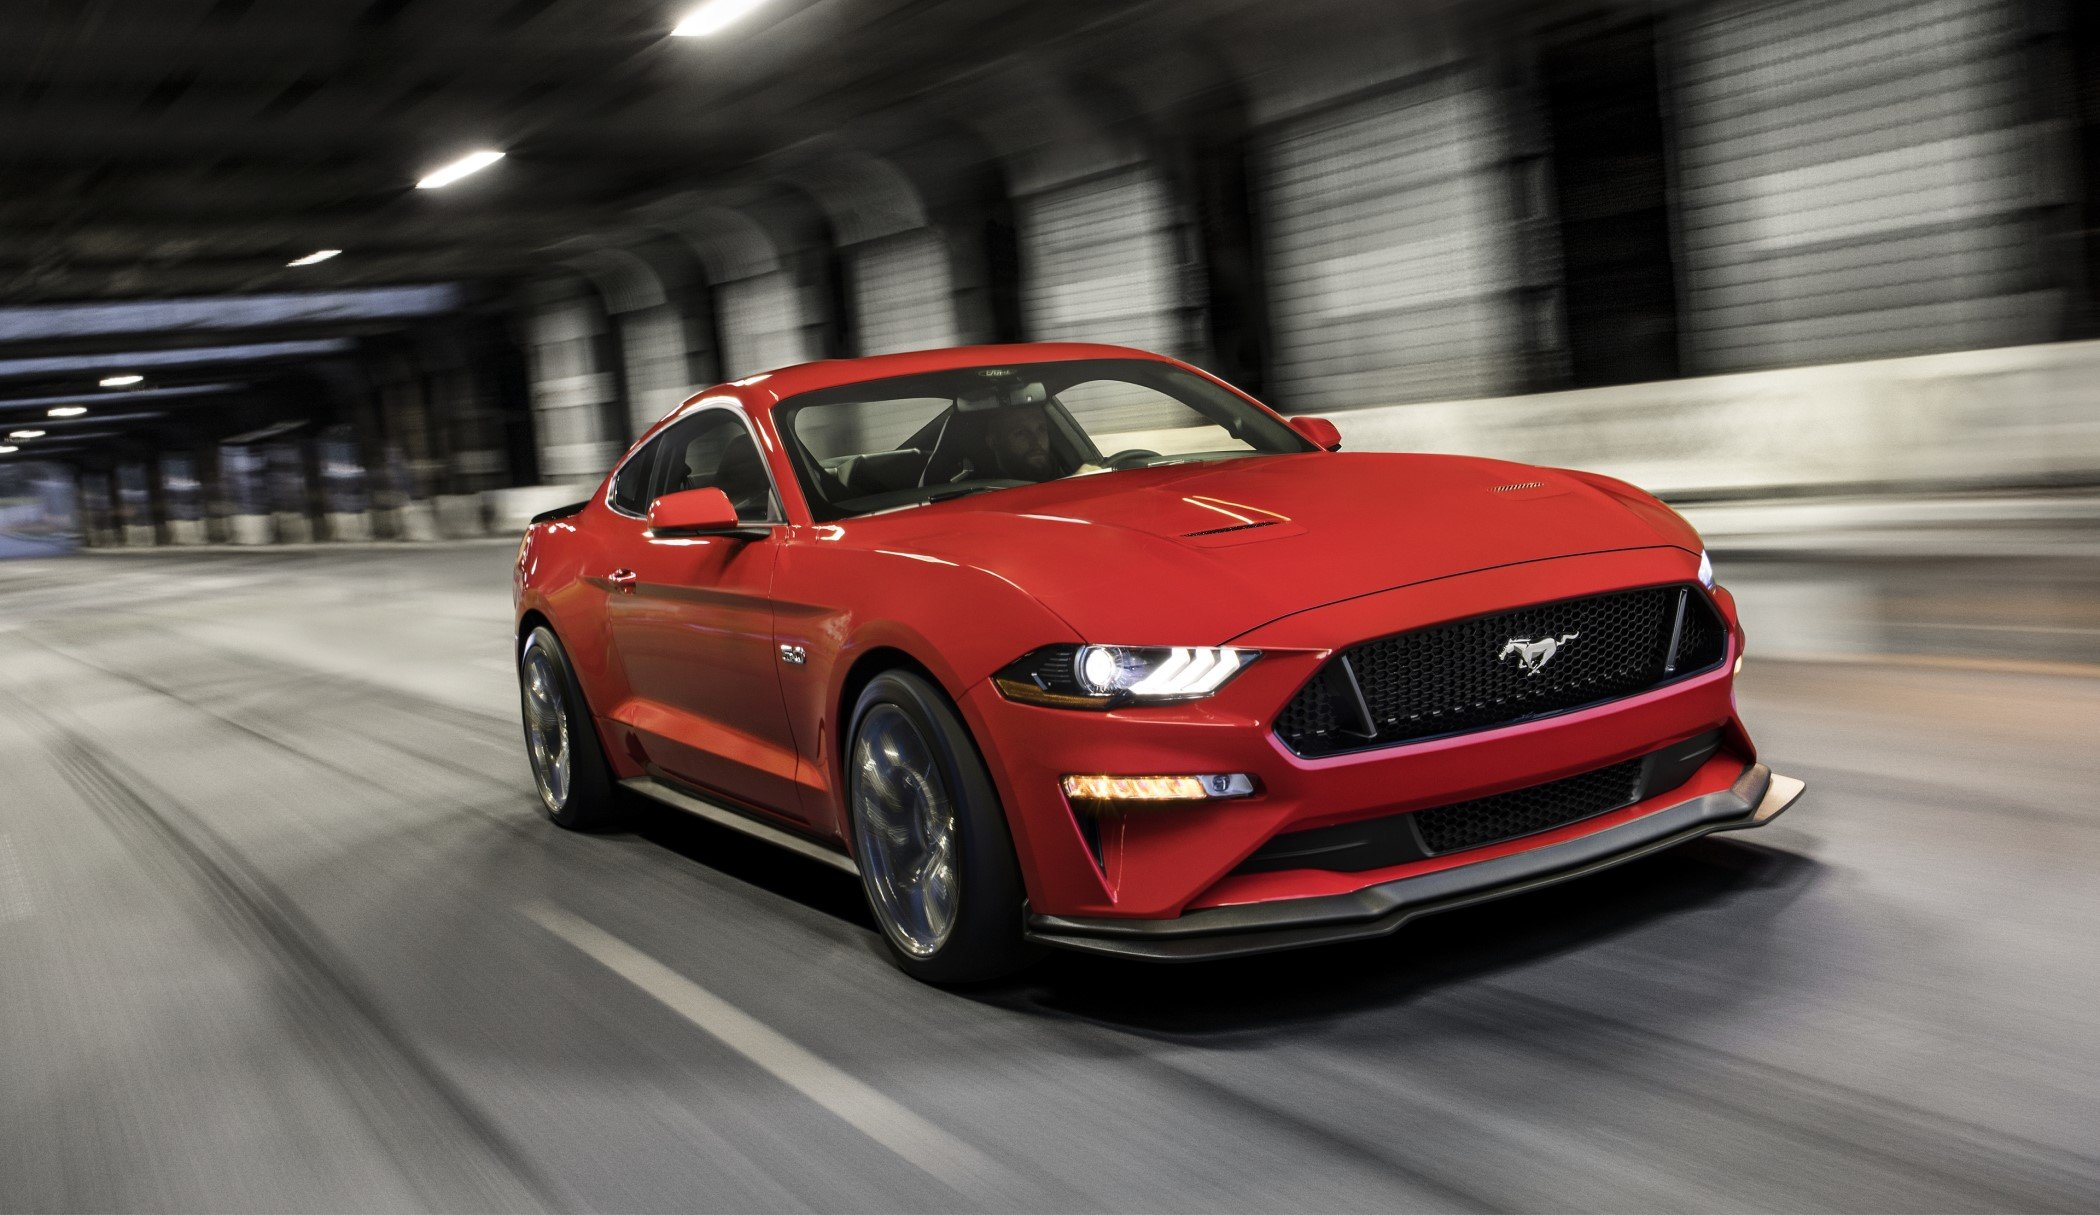 Ford Mustang Lease >> Ford Mustang Lease Specials Finance Deals Wall Township Nj